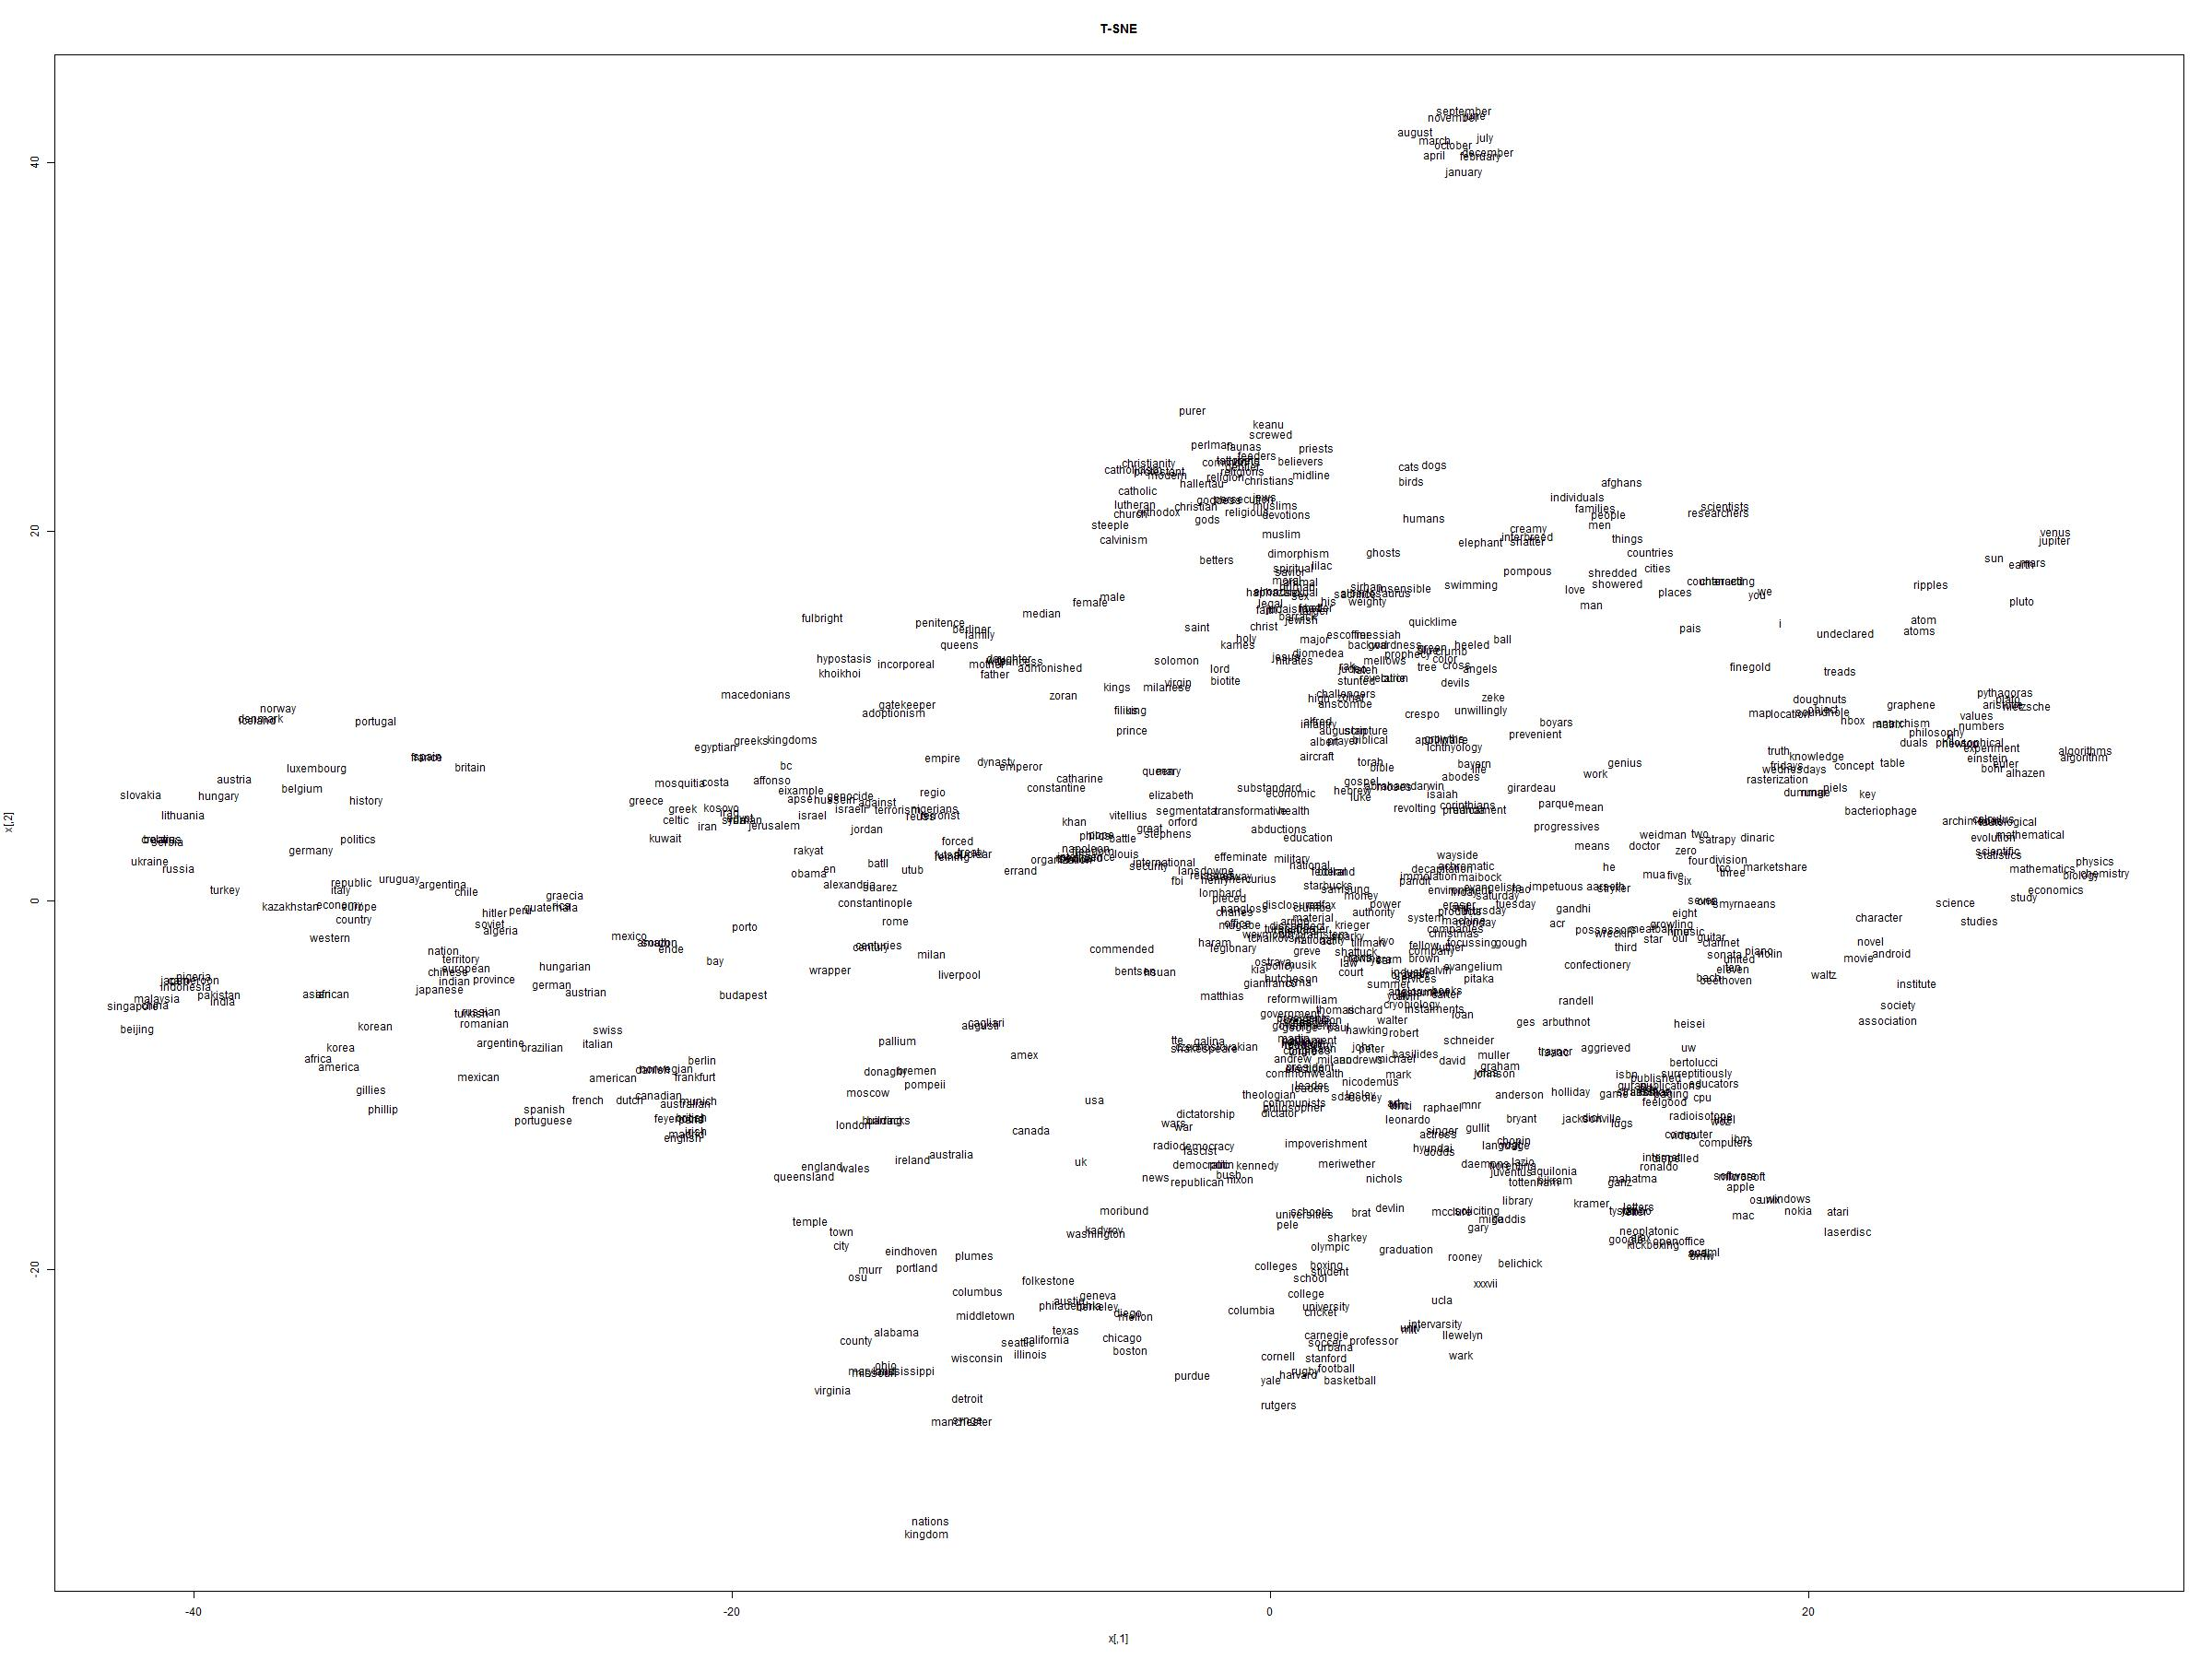 Visualization of High Dimensional Data using t-SNE with R